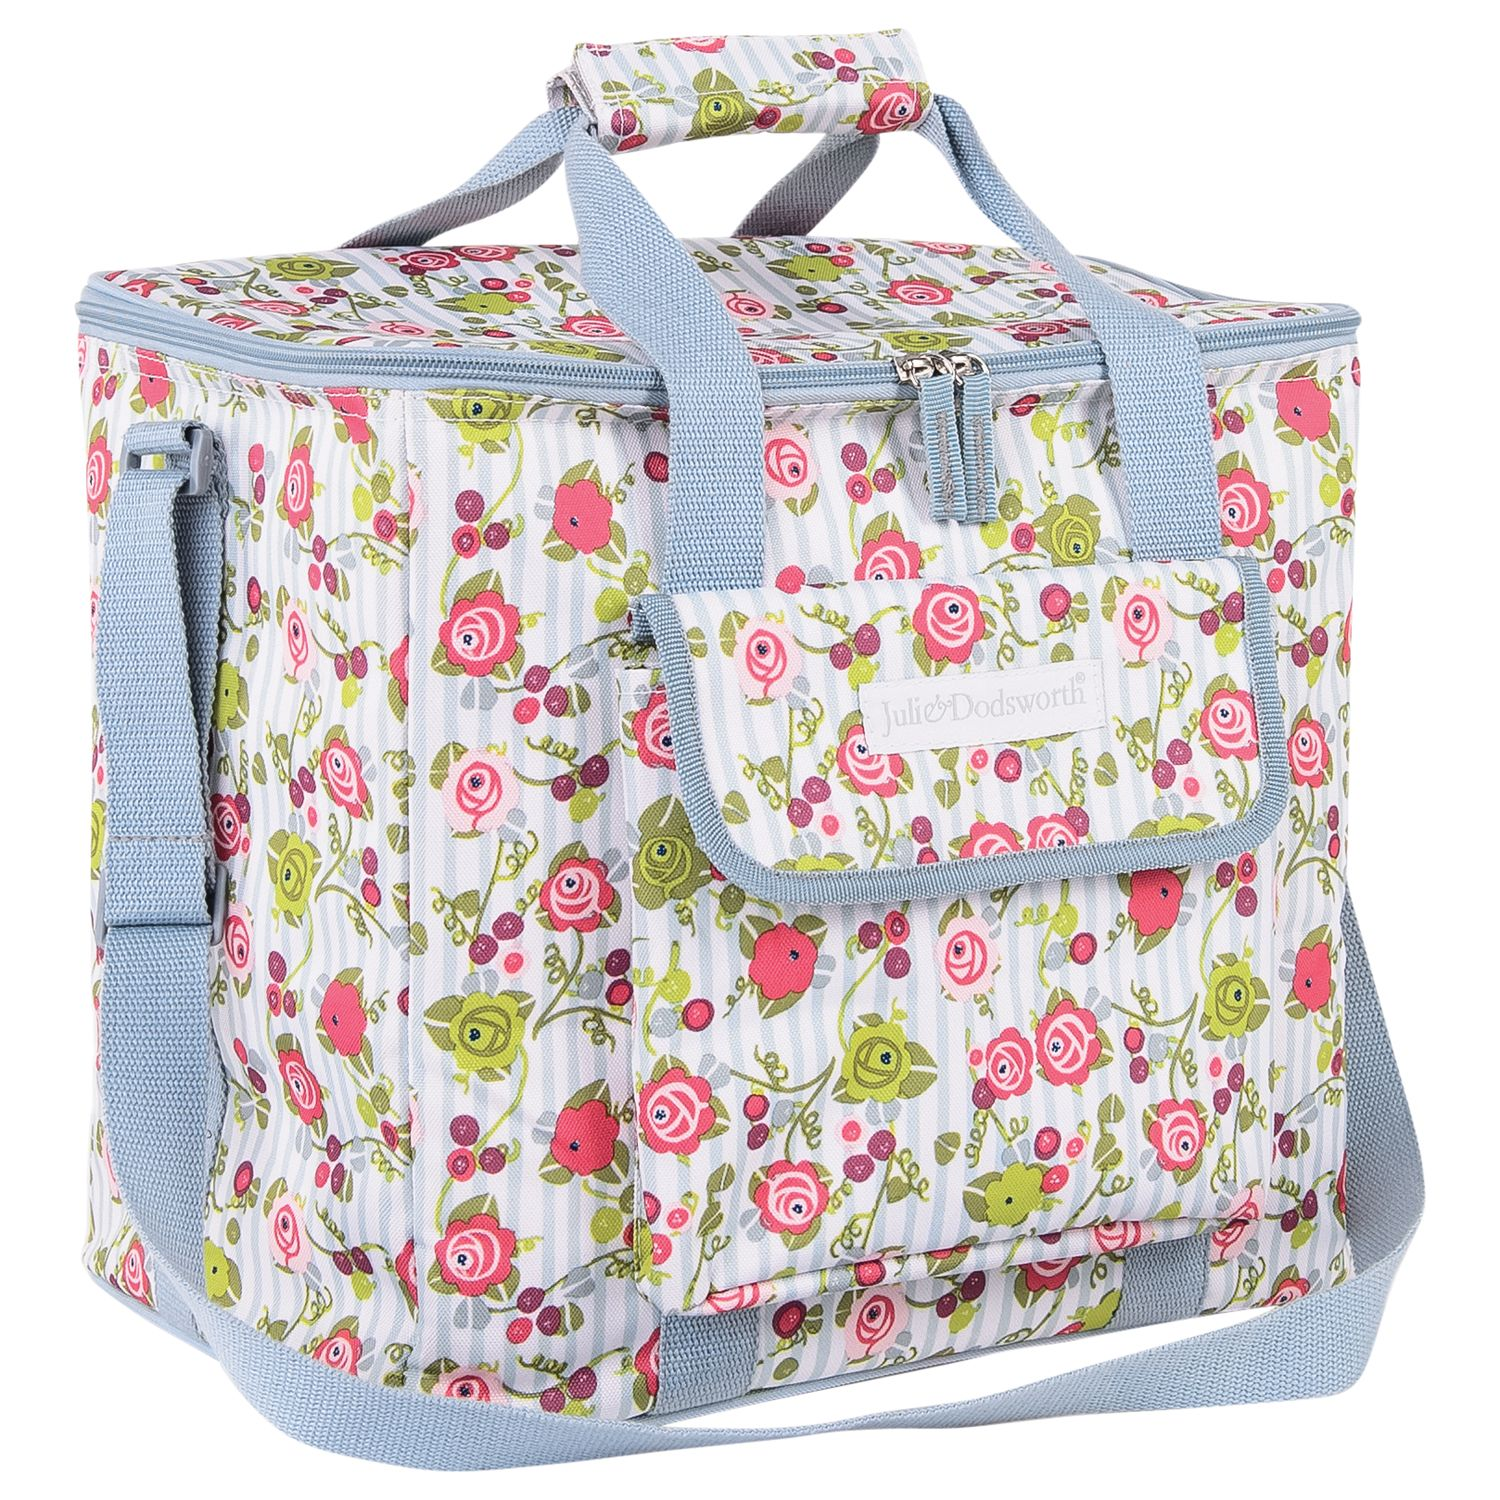 Julie Dodsworth Floral Family Cool Bag